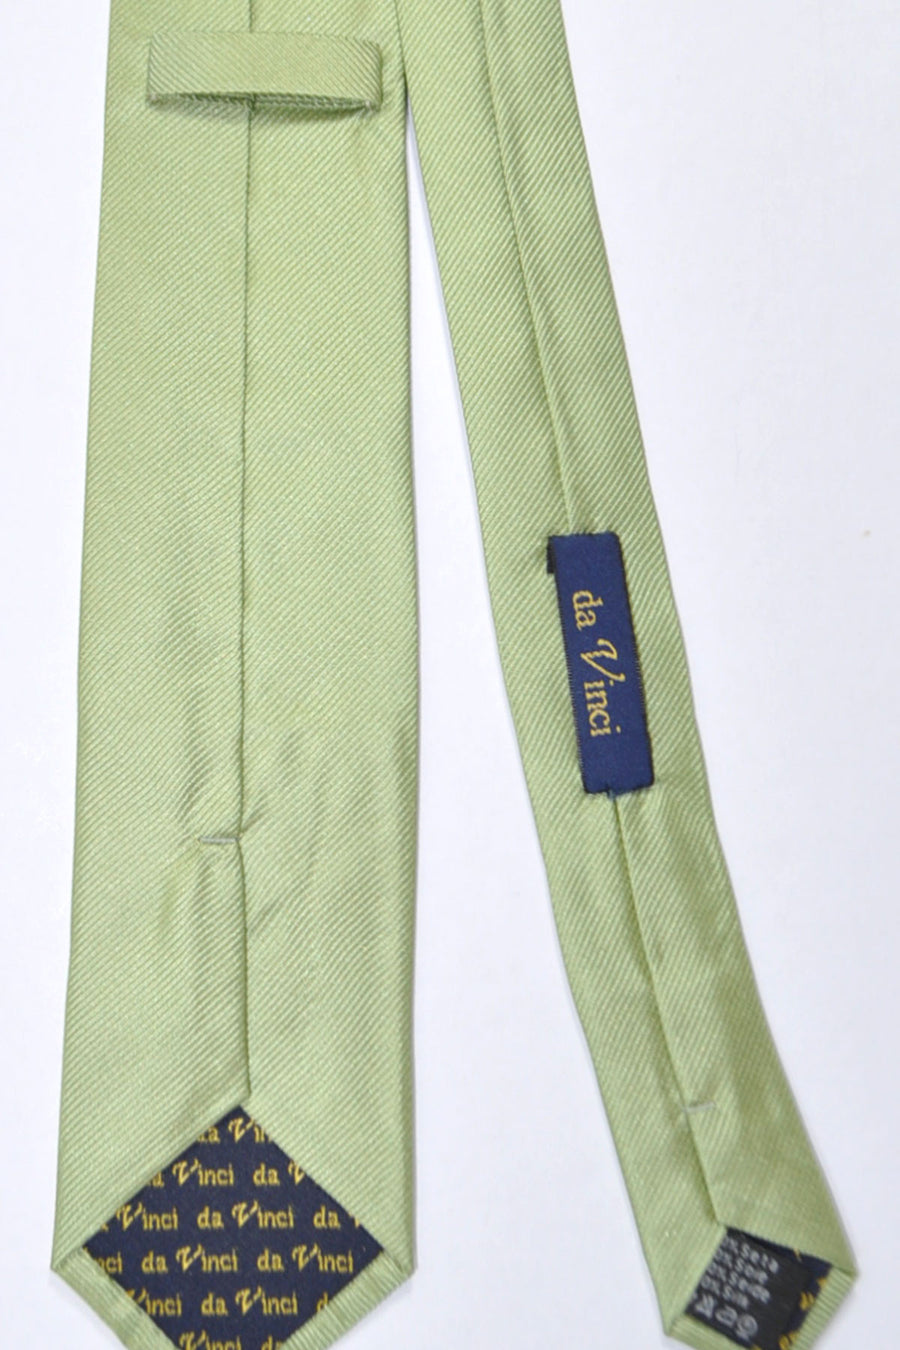 Da Vinci Narrow Tie Lime Grosgrain - Made in Italy